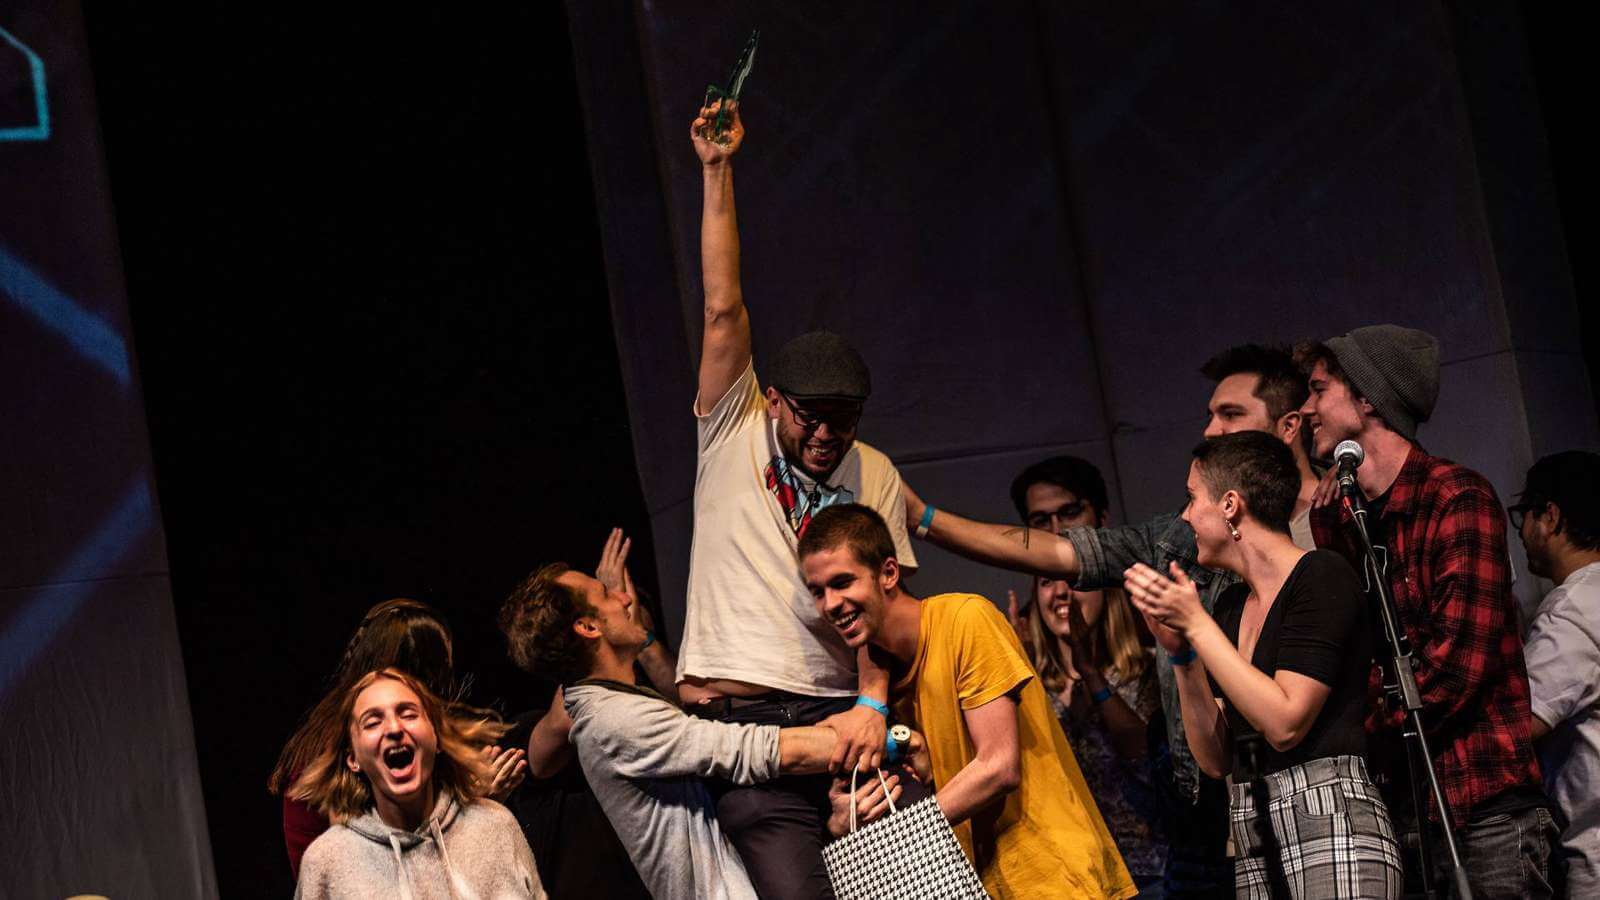 Sárközi Richárd is the new Hungarian Slam Poetry Champion